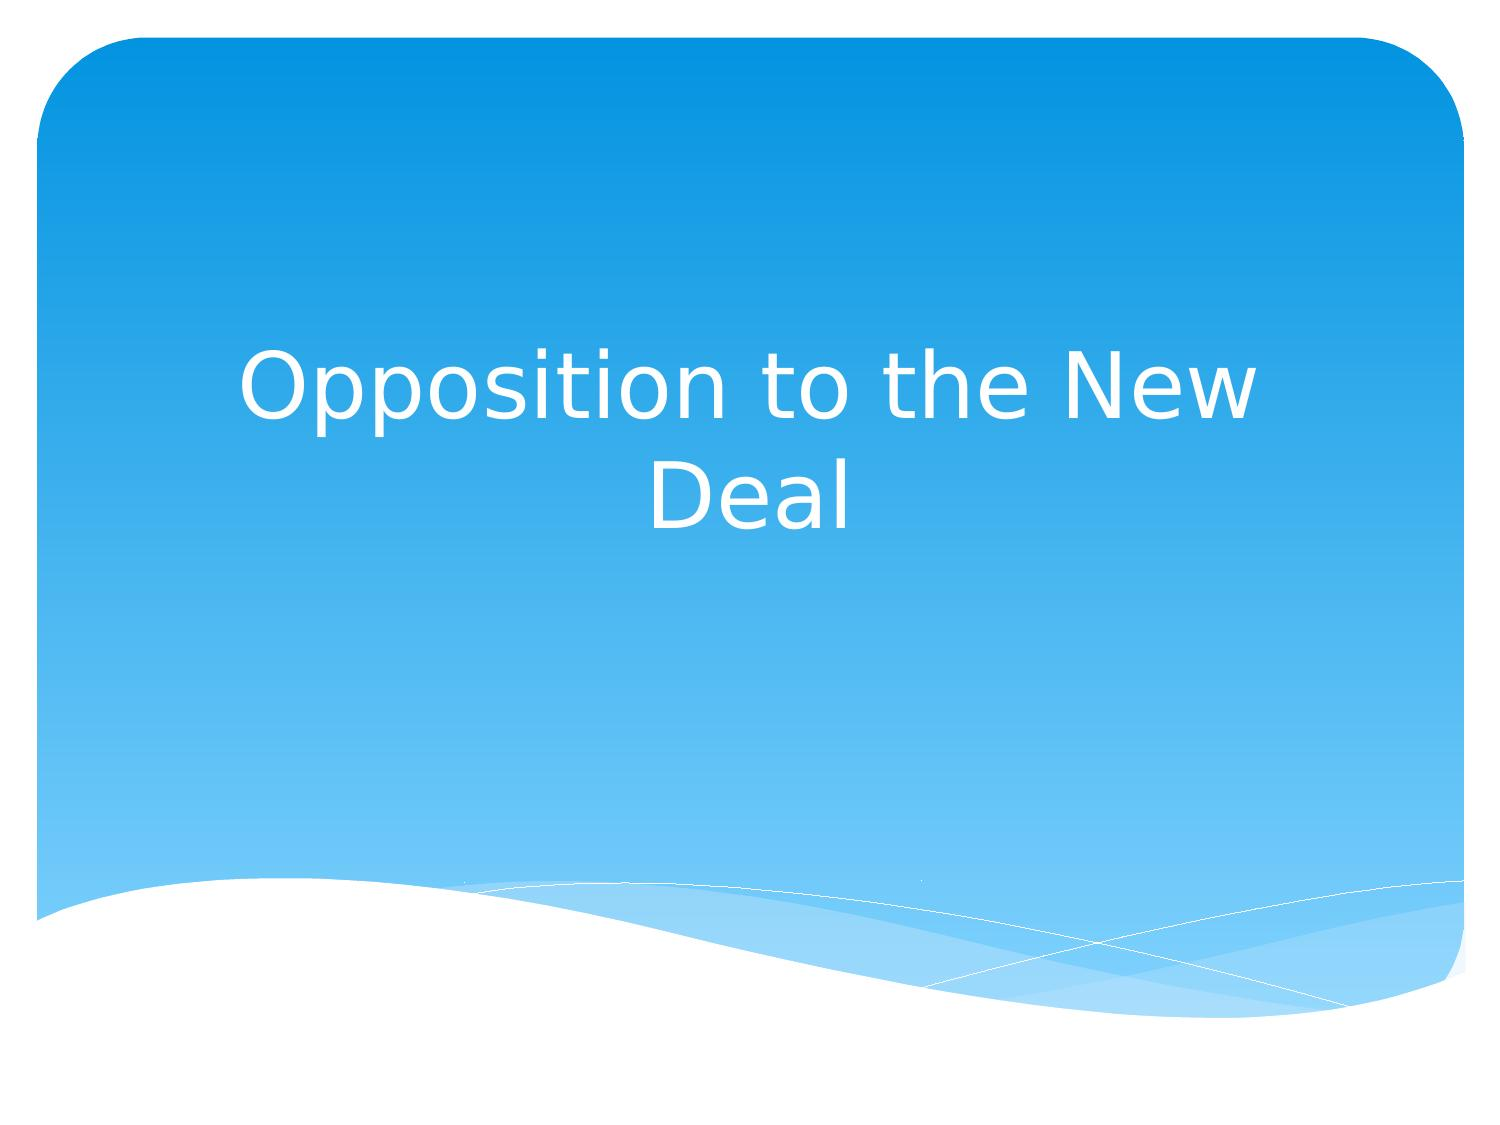 Opposition To The New Deal Powerpoint